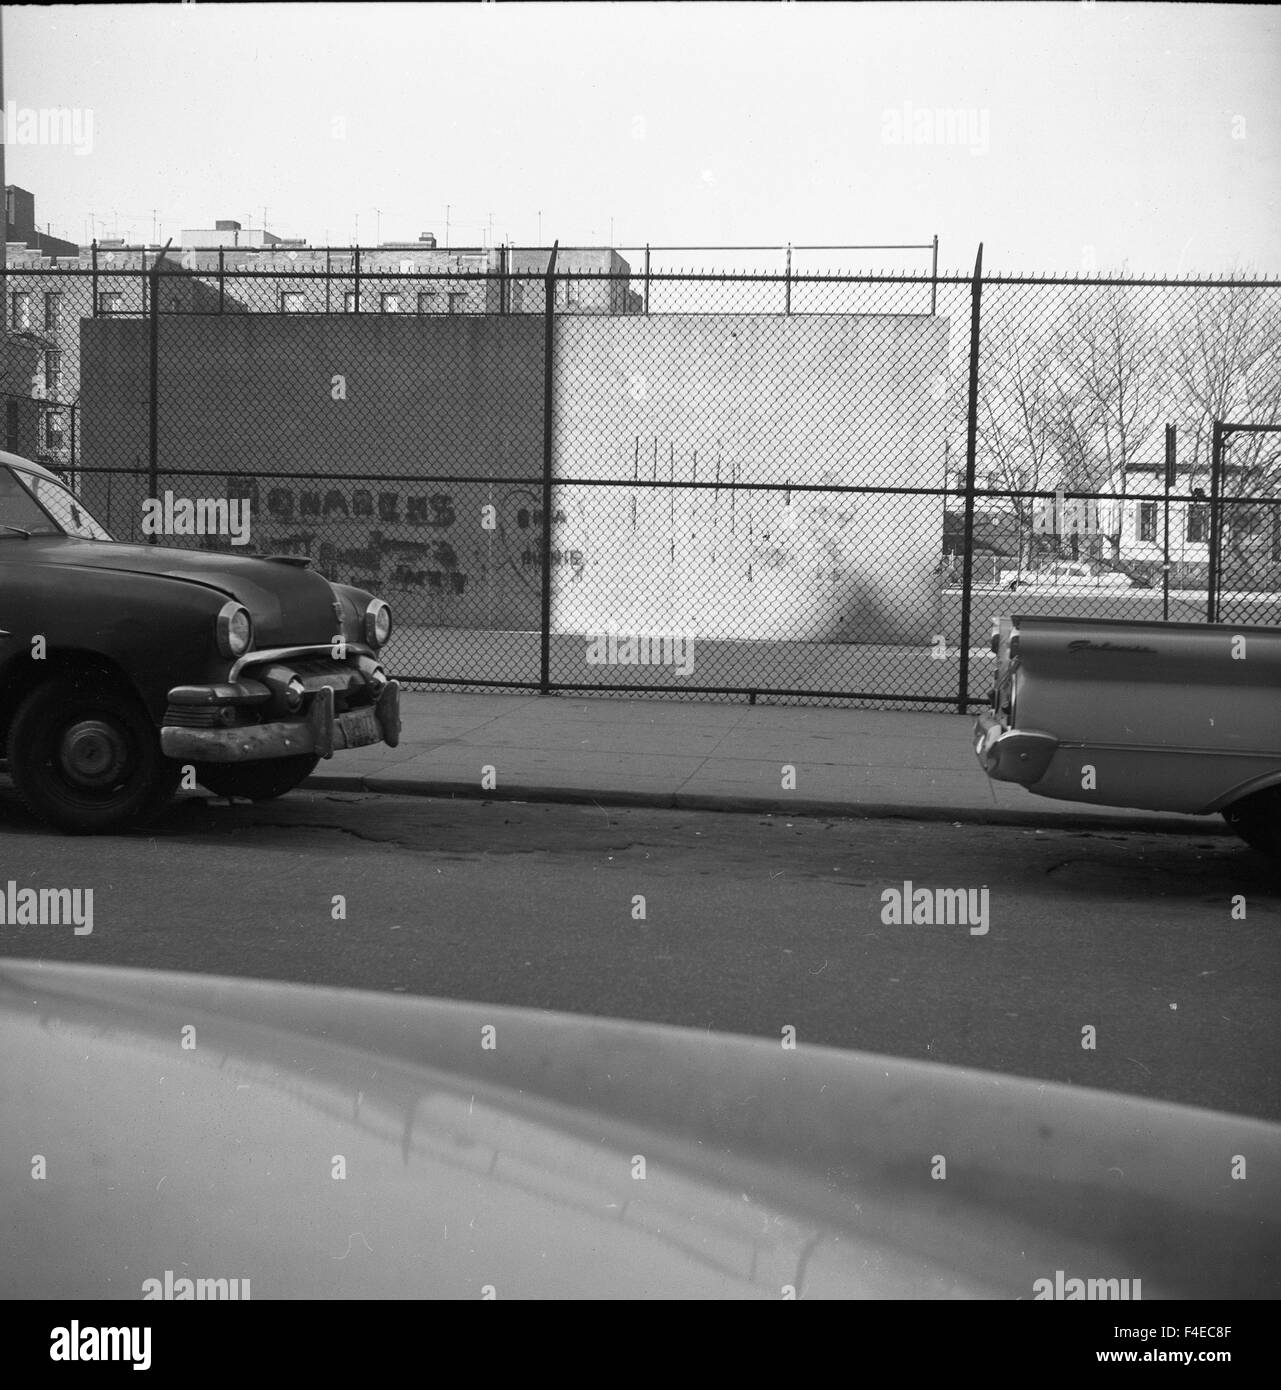 1950s cars parked on street in front of area with graffiti - Stock Image